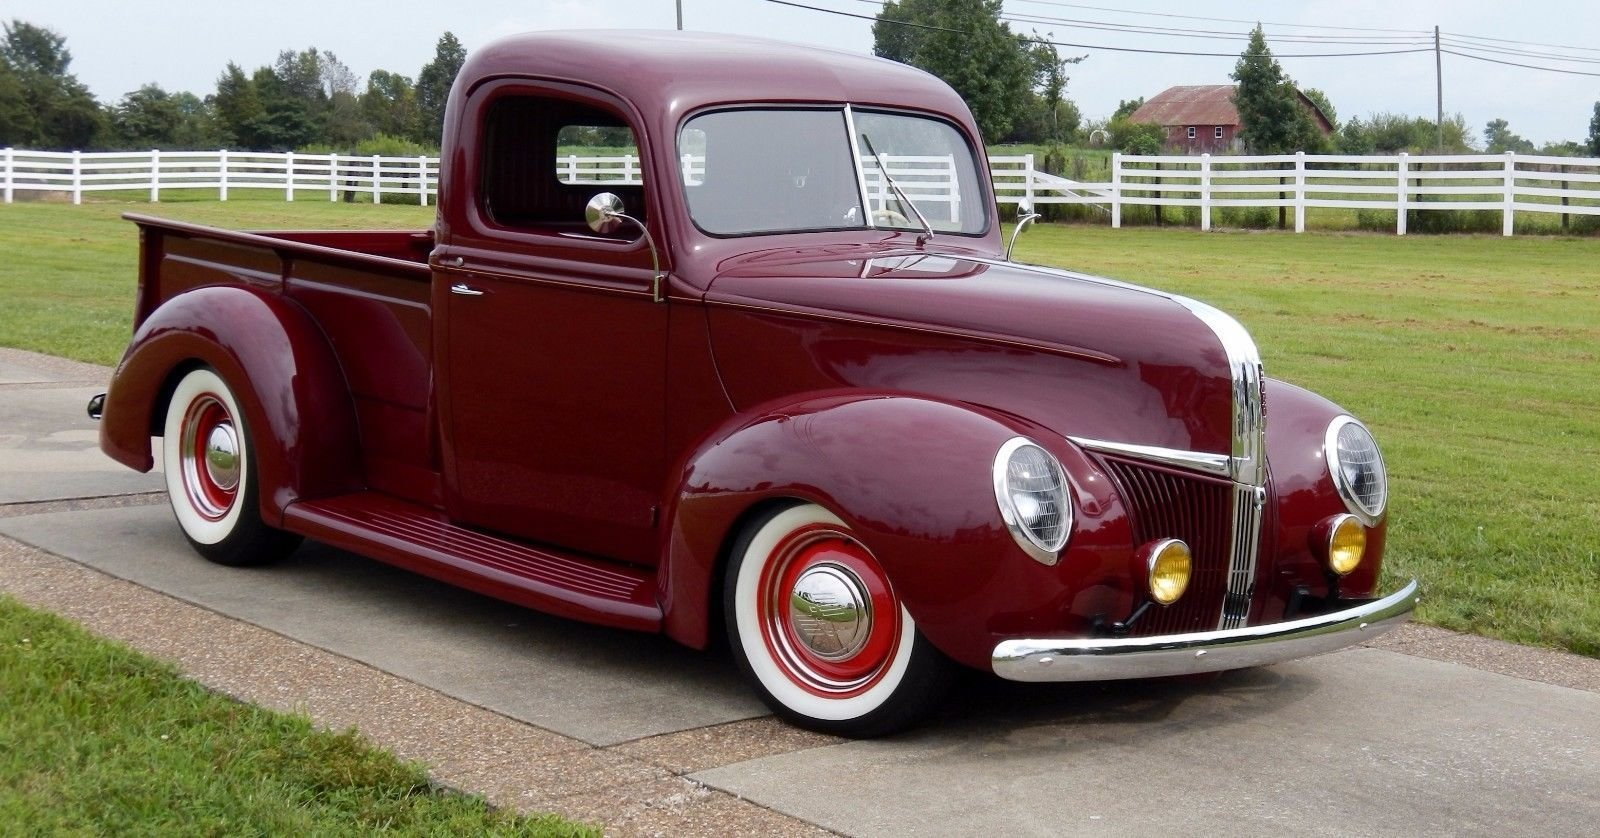 New Timeless Classic 1940 Ford Truck Hot Rod For Sale On This Month Original 1024 x 768